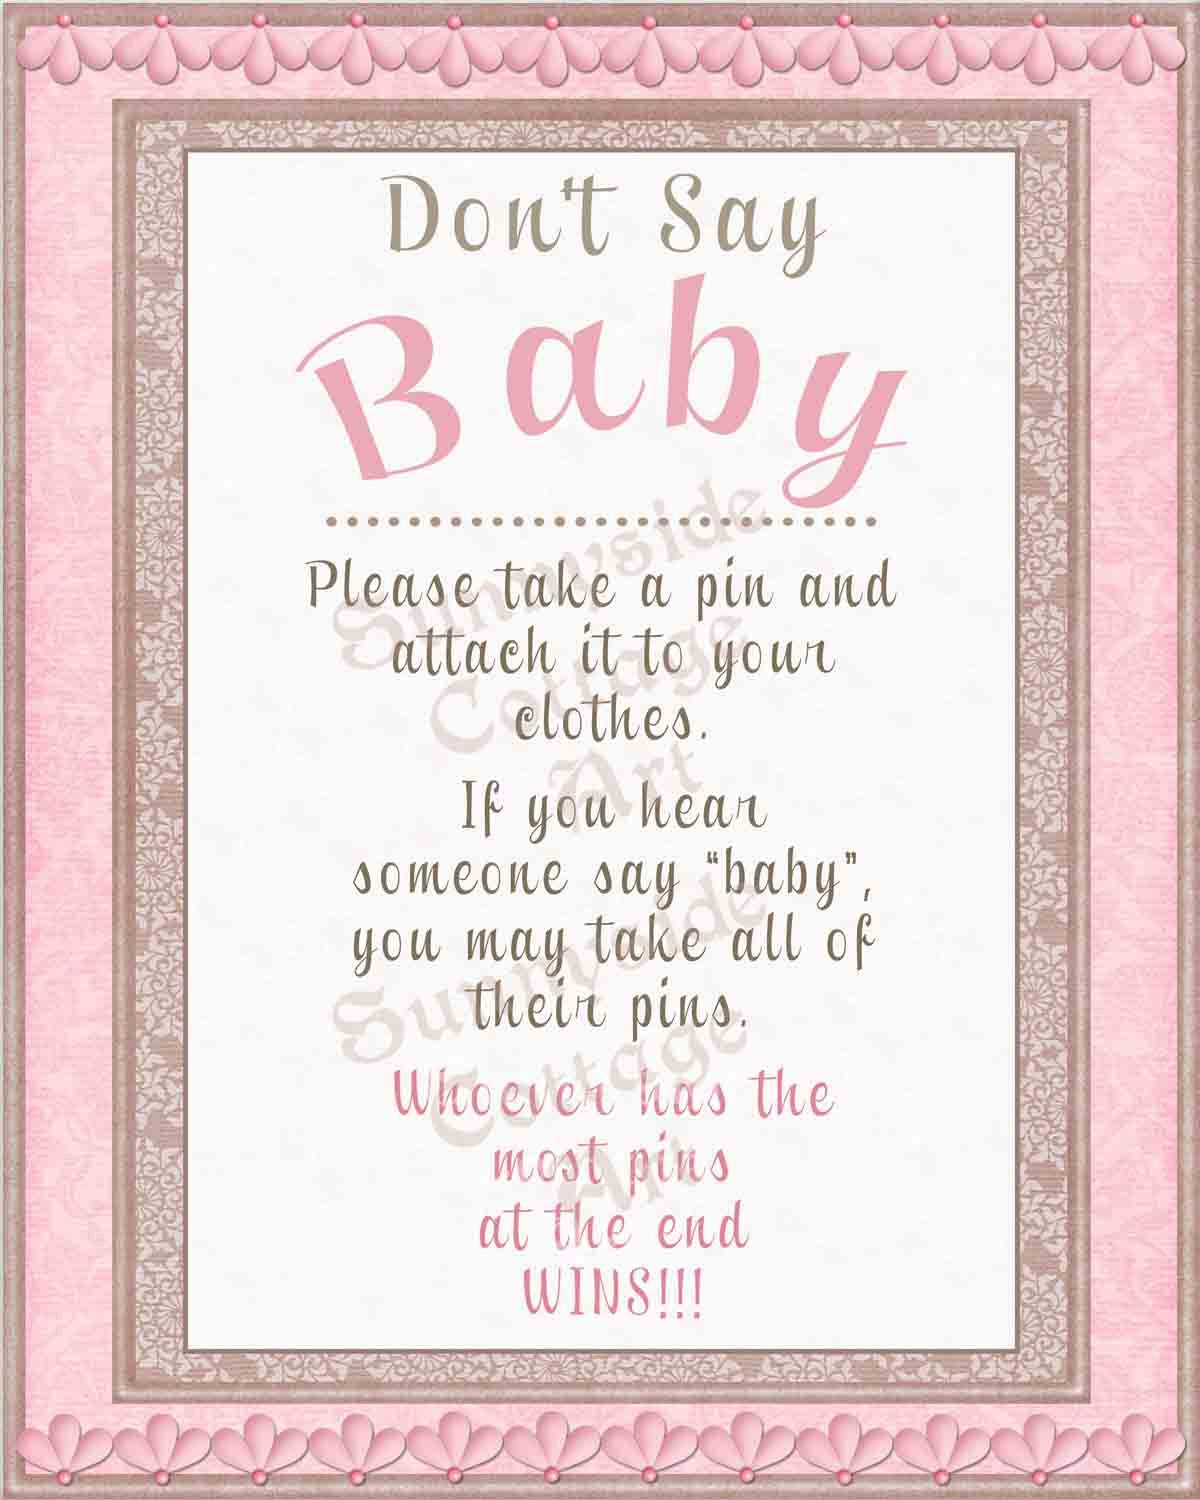 Unforgettable image intended for don t say baby free printable